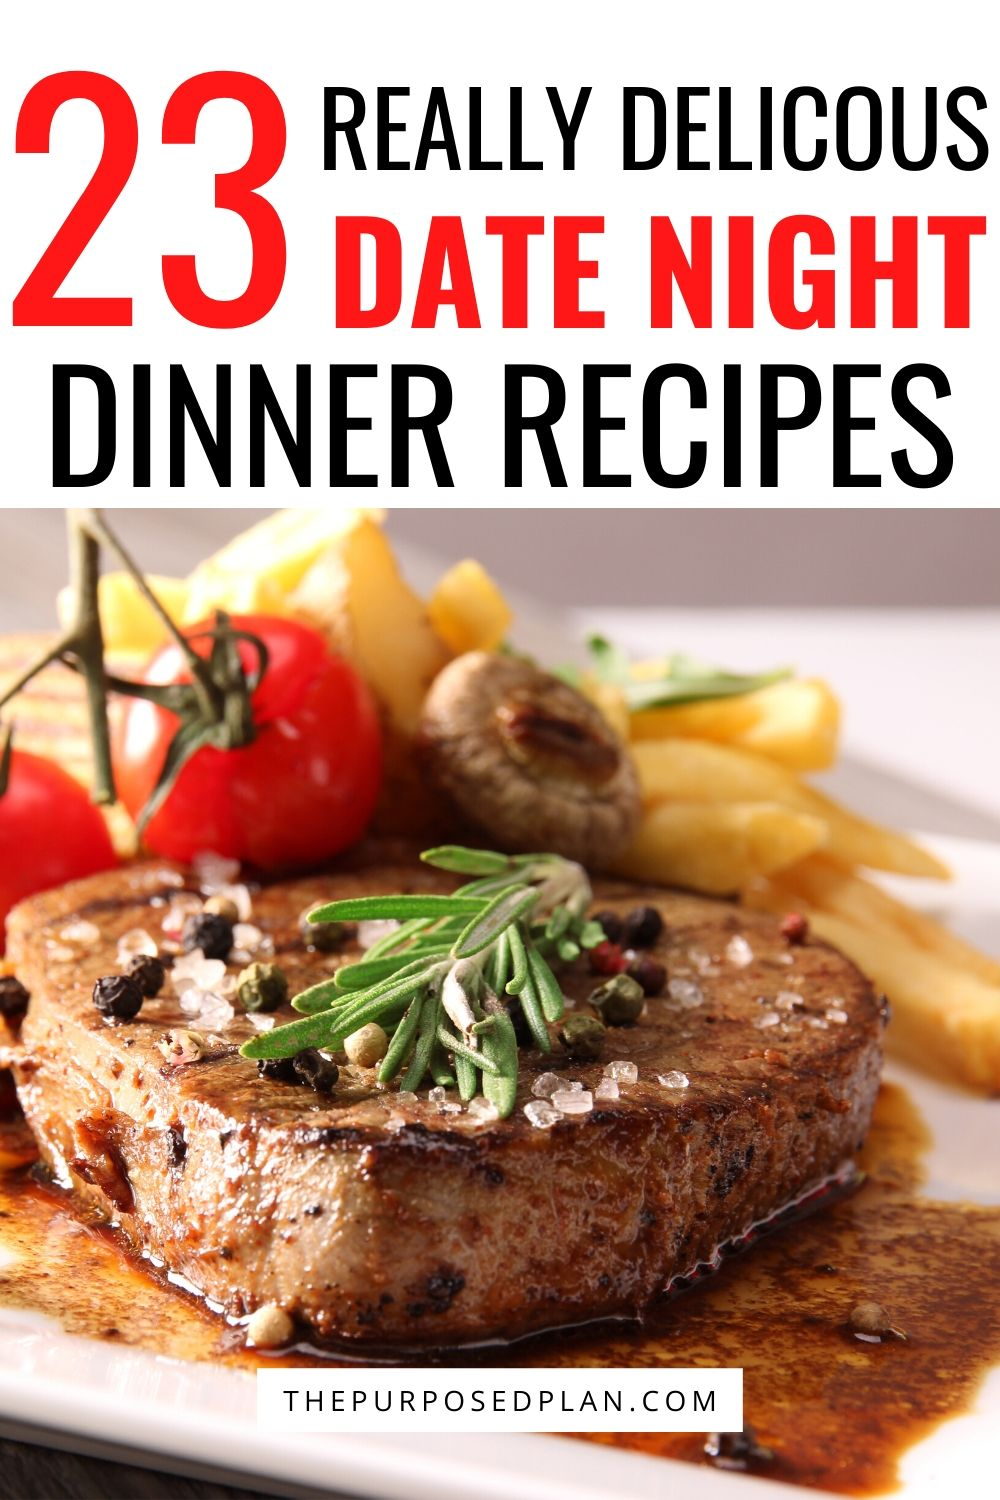 date night dinner recipes